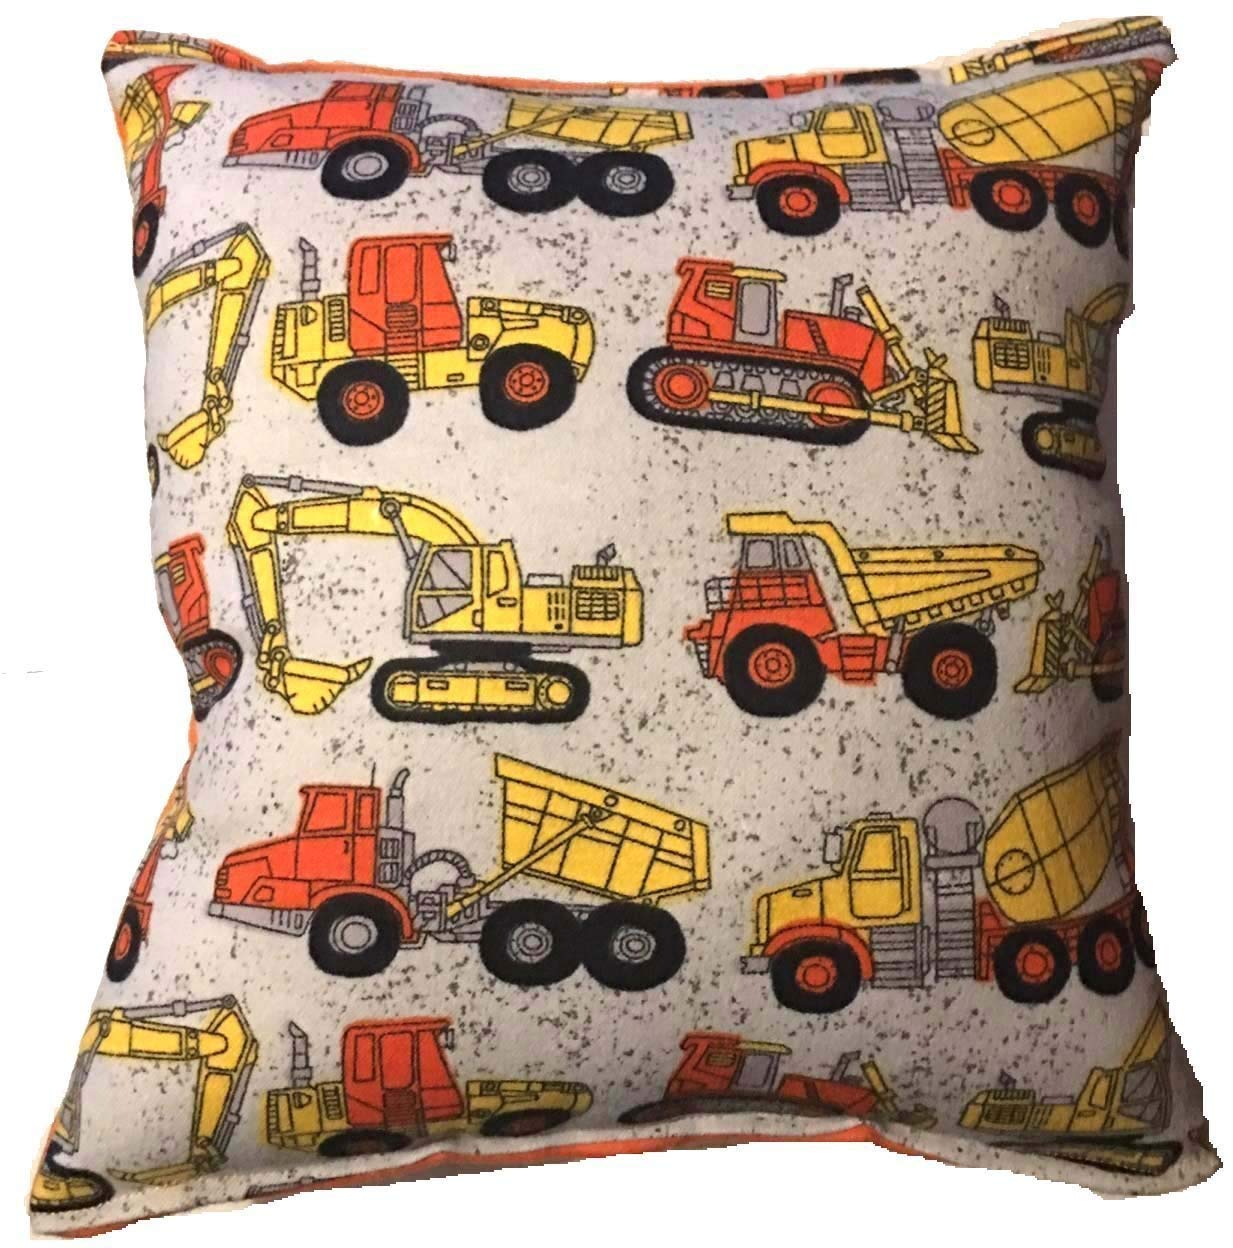 Construction Trucks Pillow Tonka Style National products Cheap super special price All Ar Pillows Our